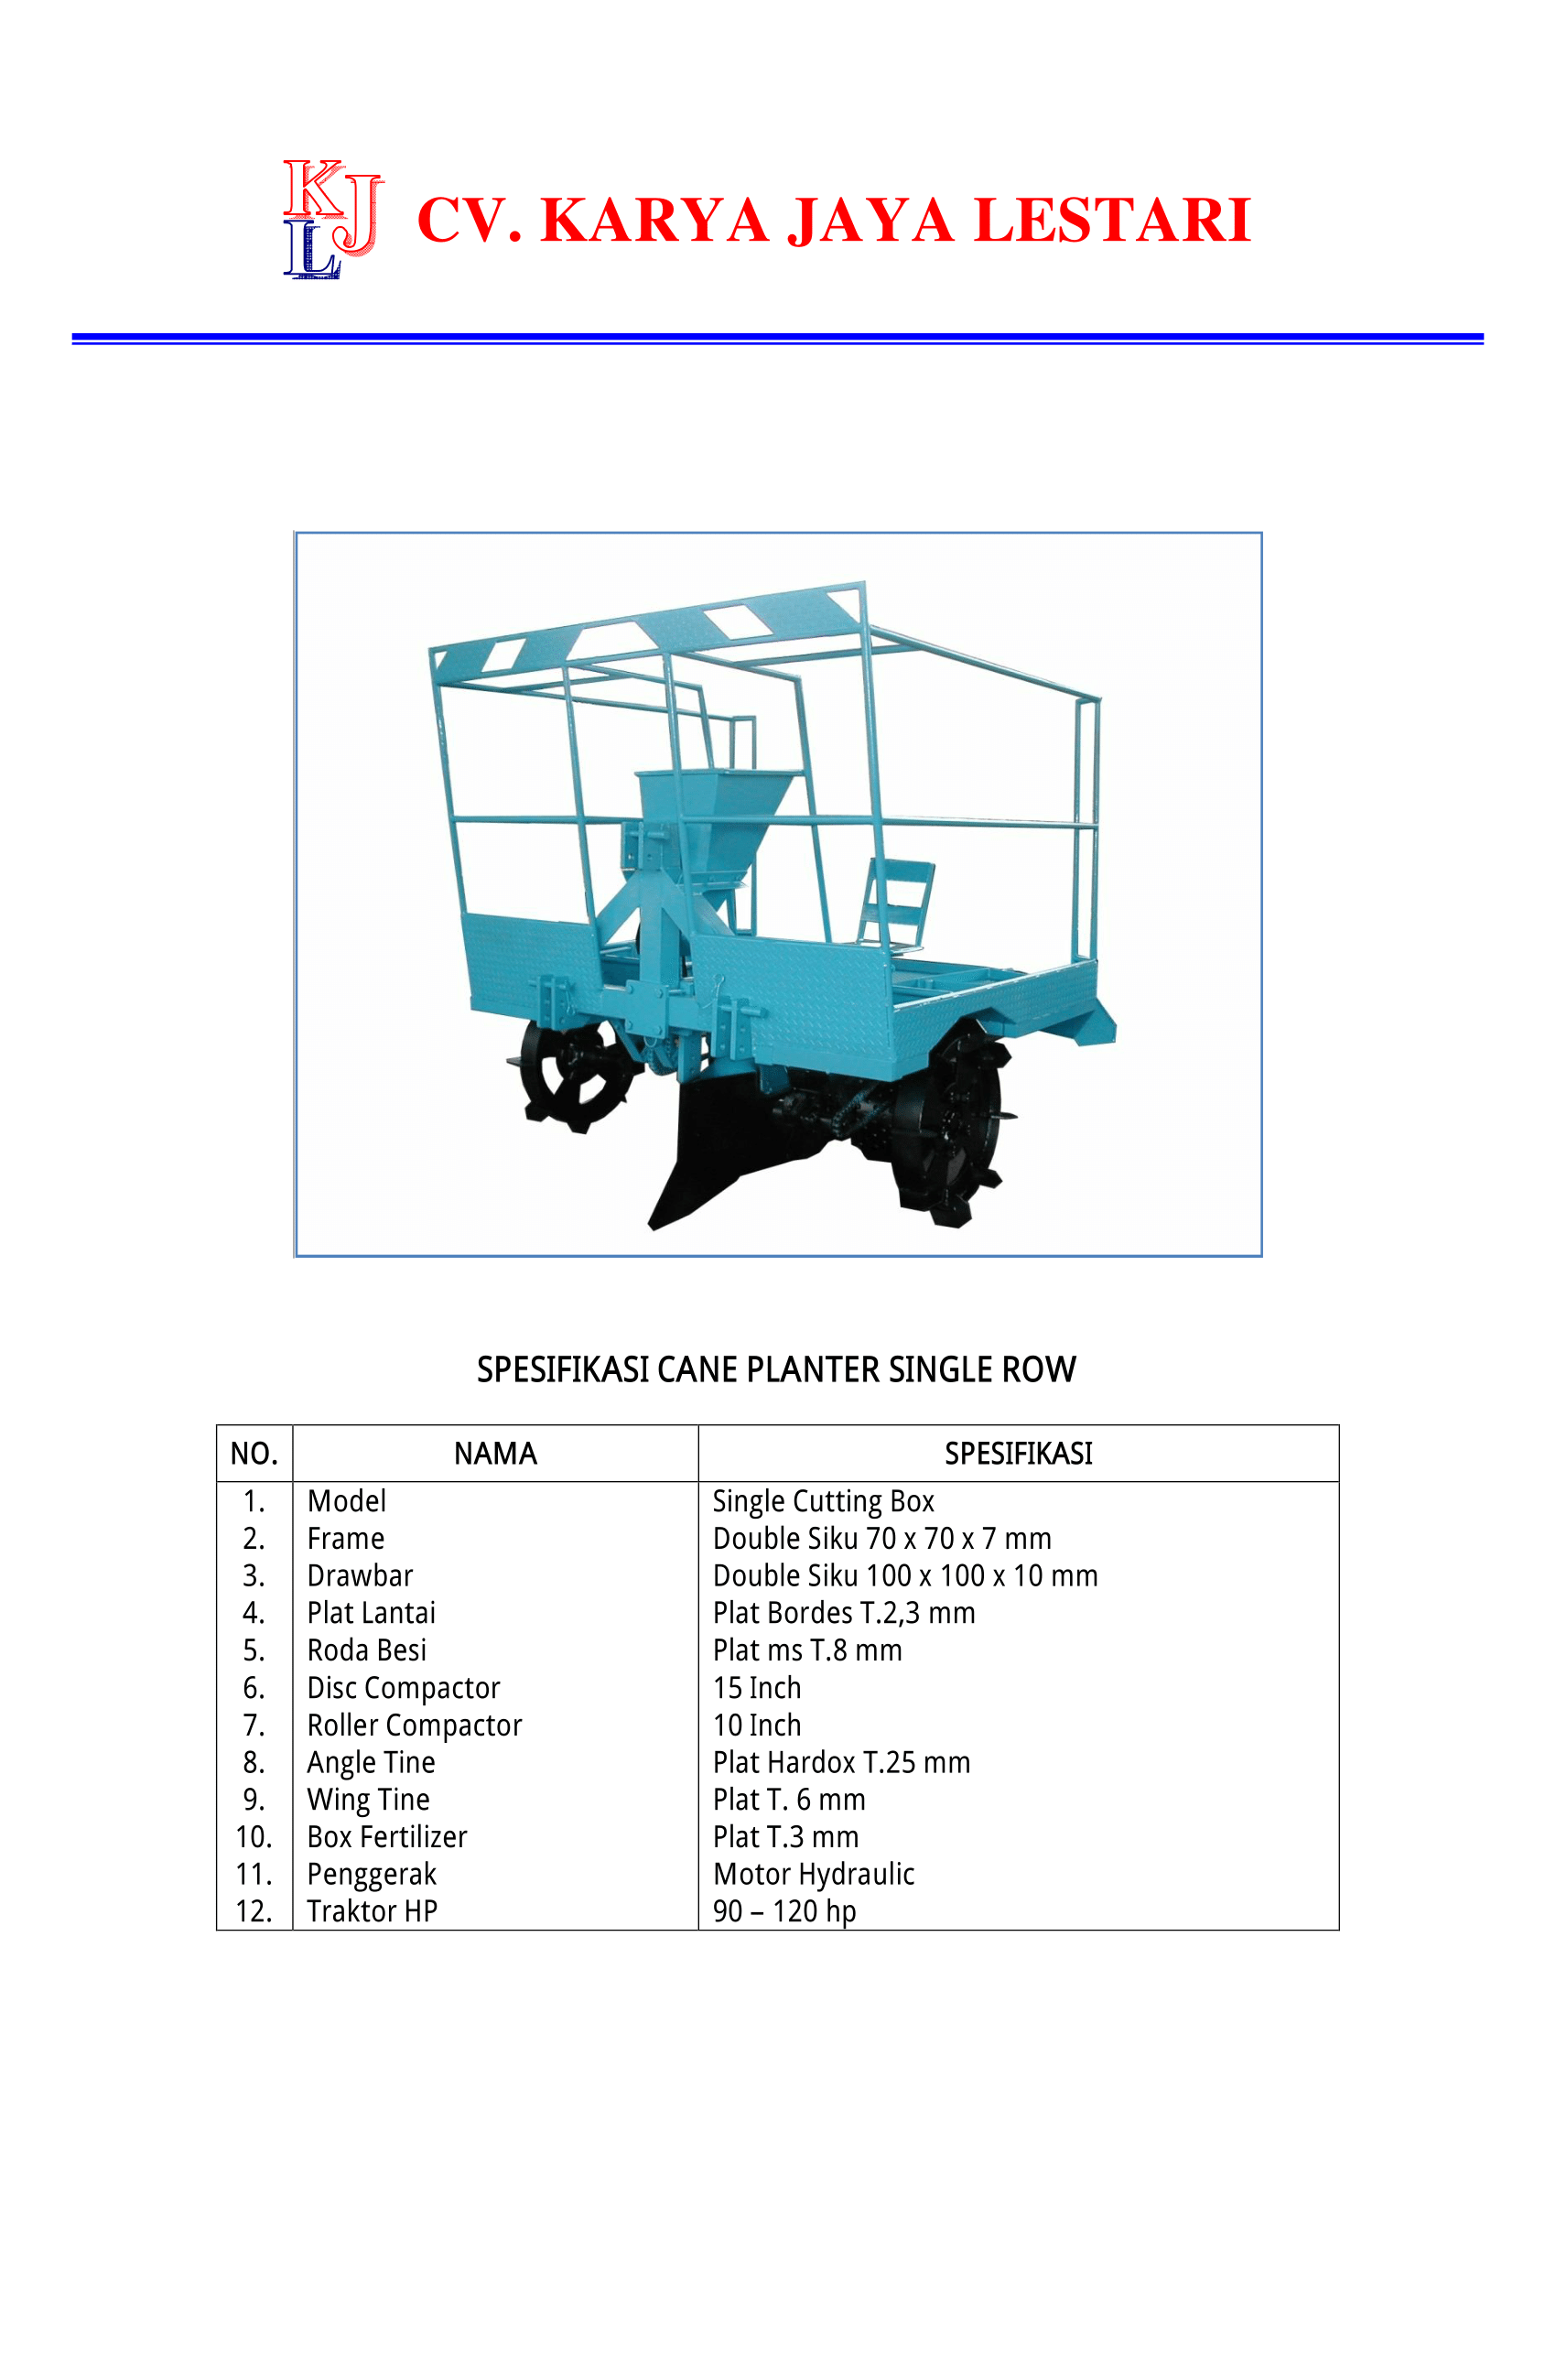 cane-planter-single-row-1